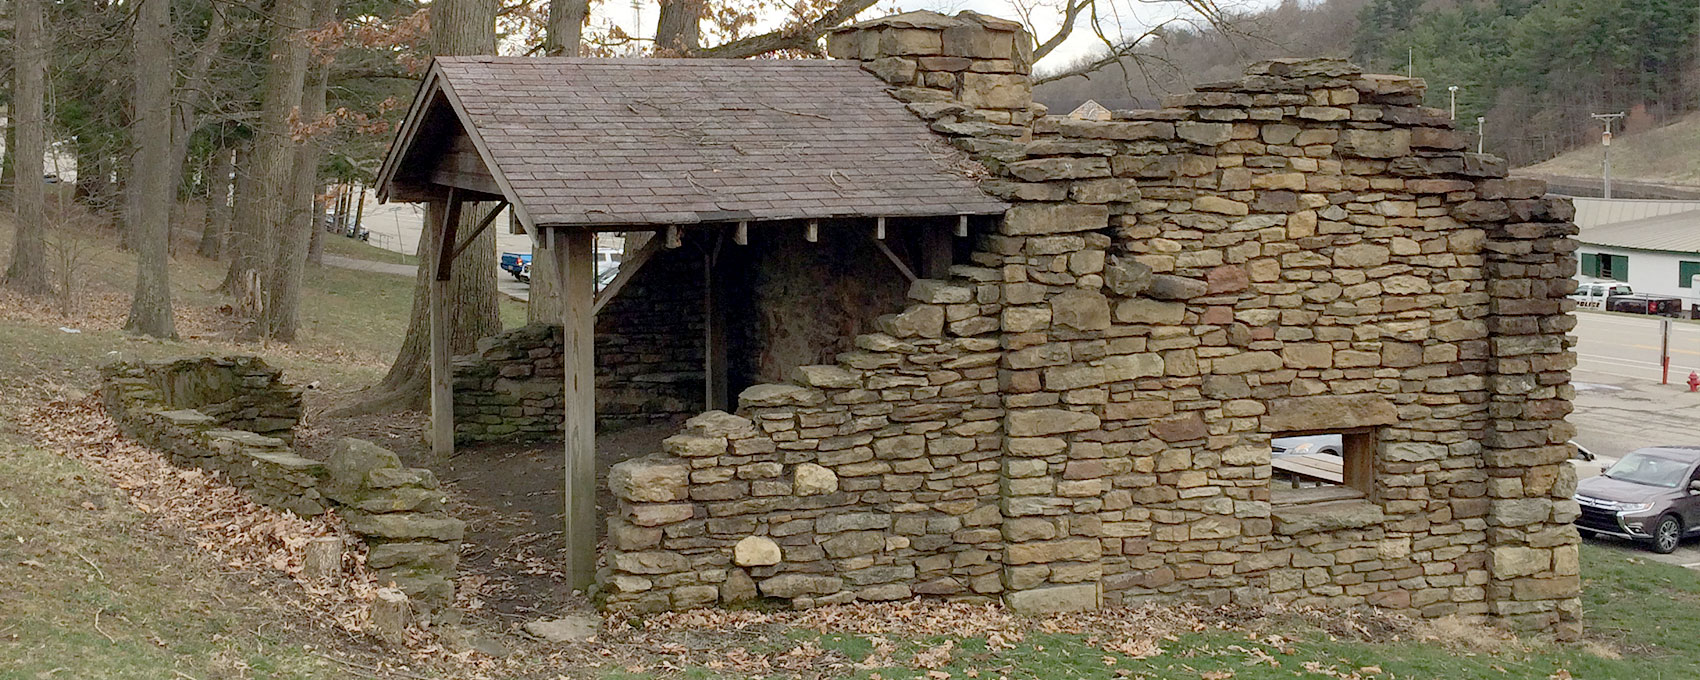 Nevin Shelter. Allegheny County Parks. Pittsburgh PA